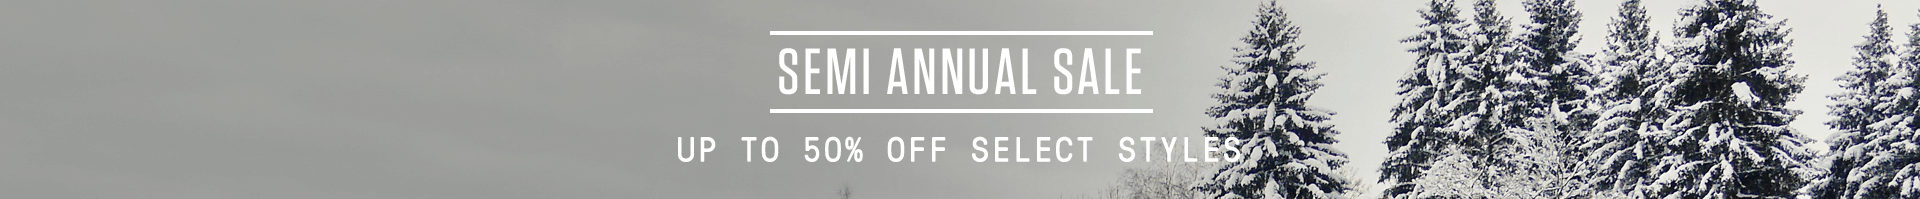 Semi annual sale, Up to 50% Off Select Styles.